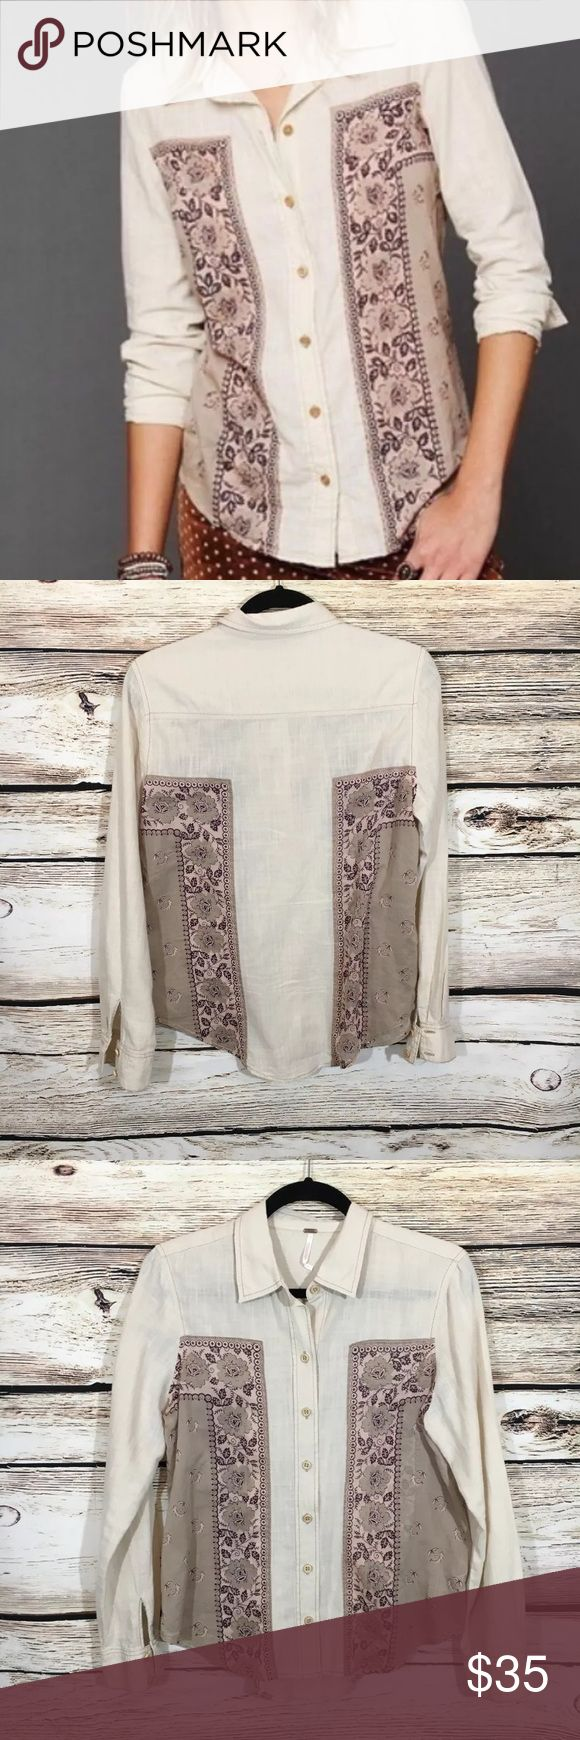 "Free People born free bandana print button down XS Free people born free button down top in off white with bandana printed design. Size XS, bust 40"", length 20"" in great condition Free People Tops Button Down Shirts"